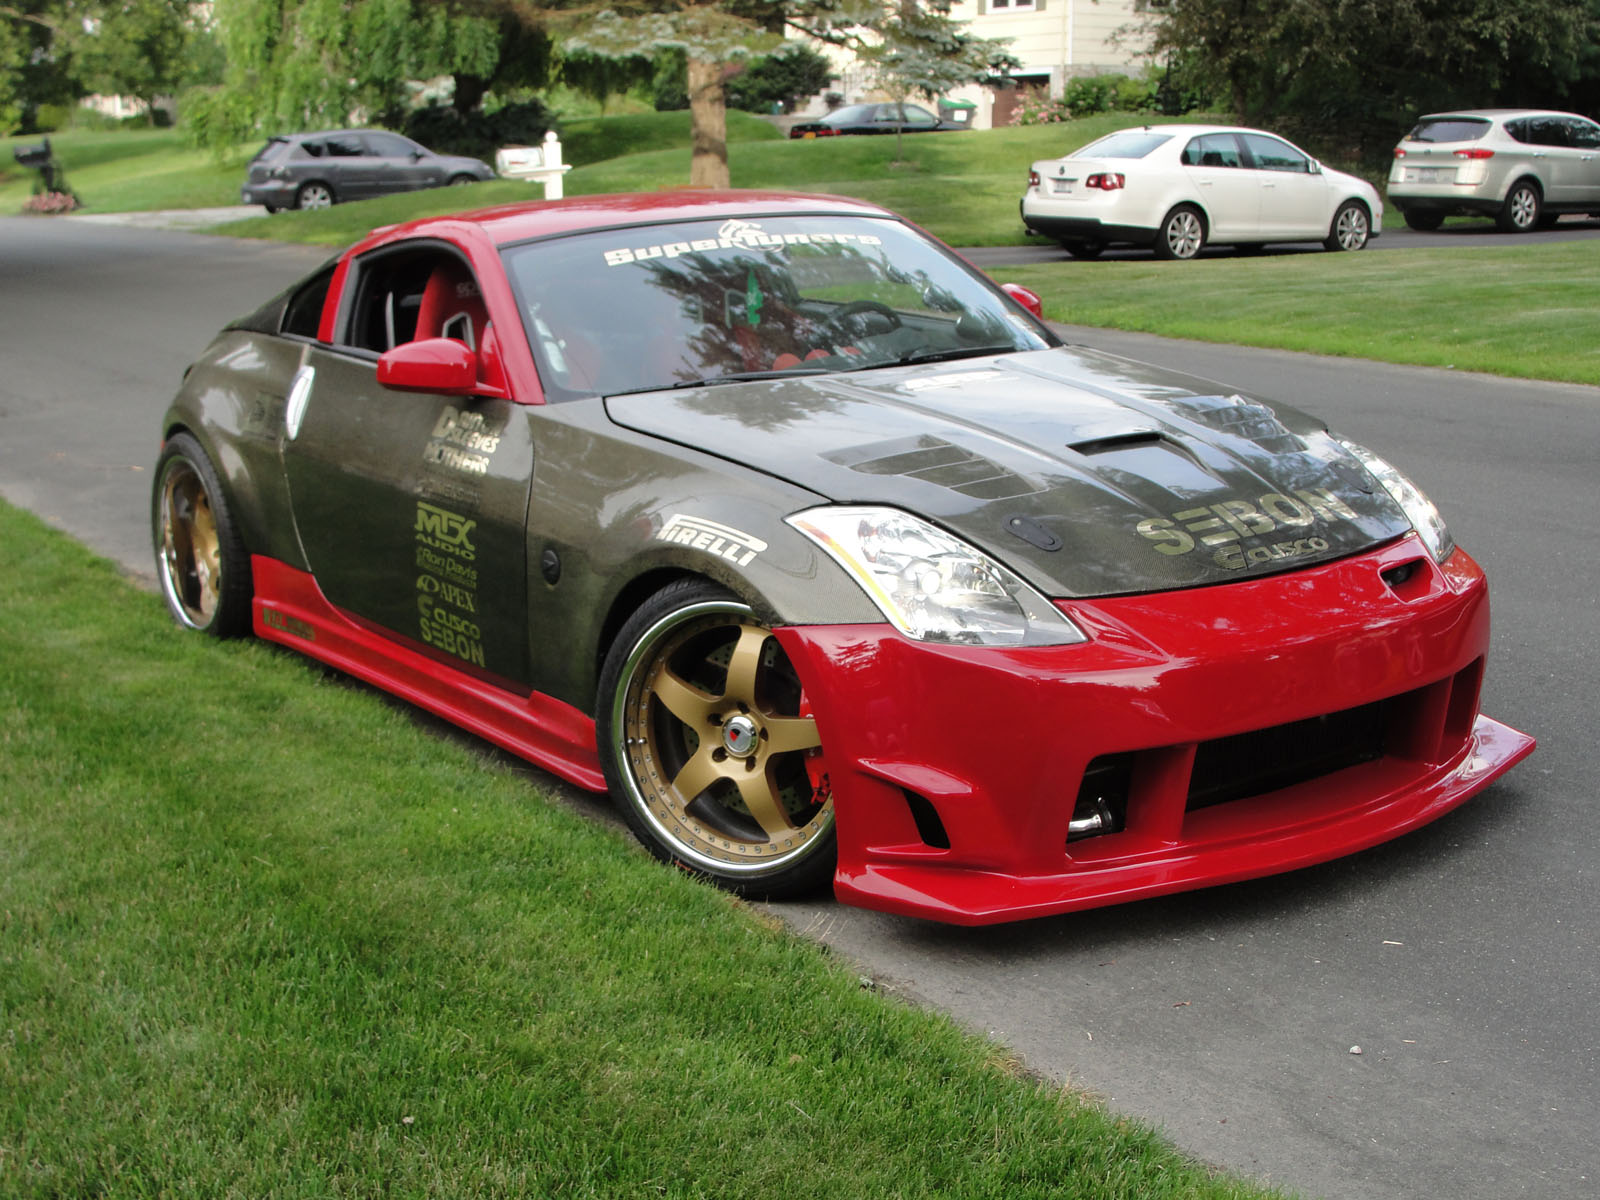 Nissan 350z modified cars for sale - Nissan 350z modified ...